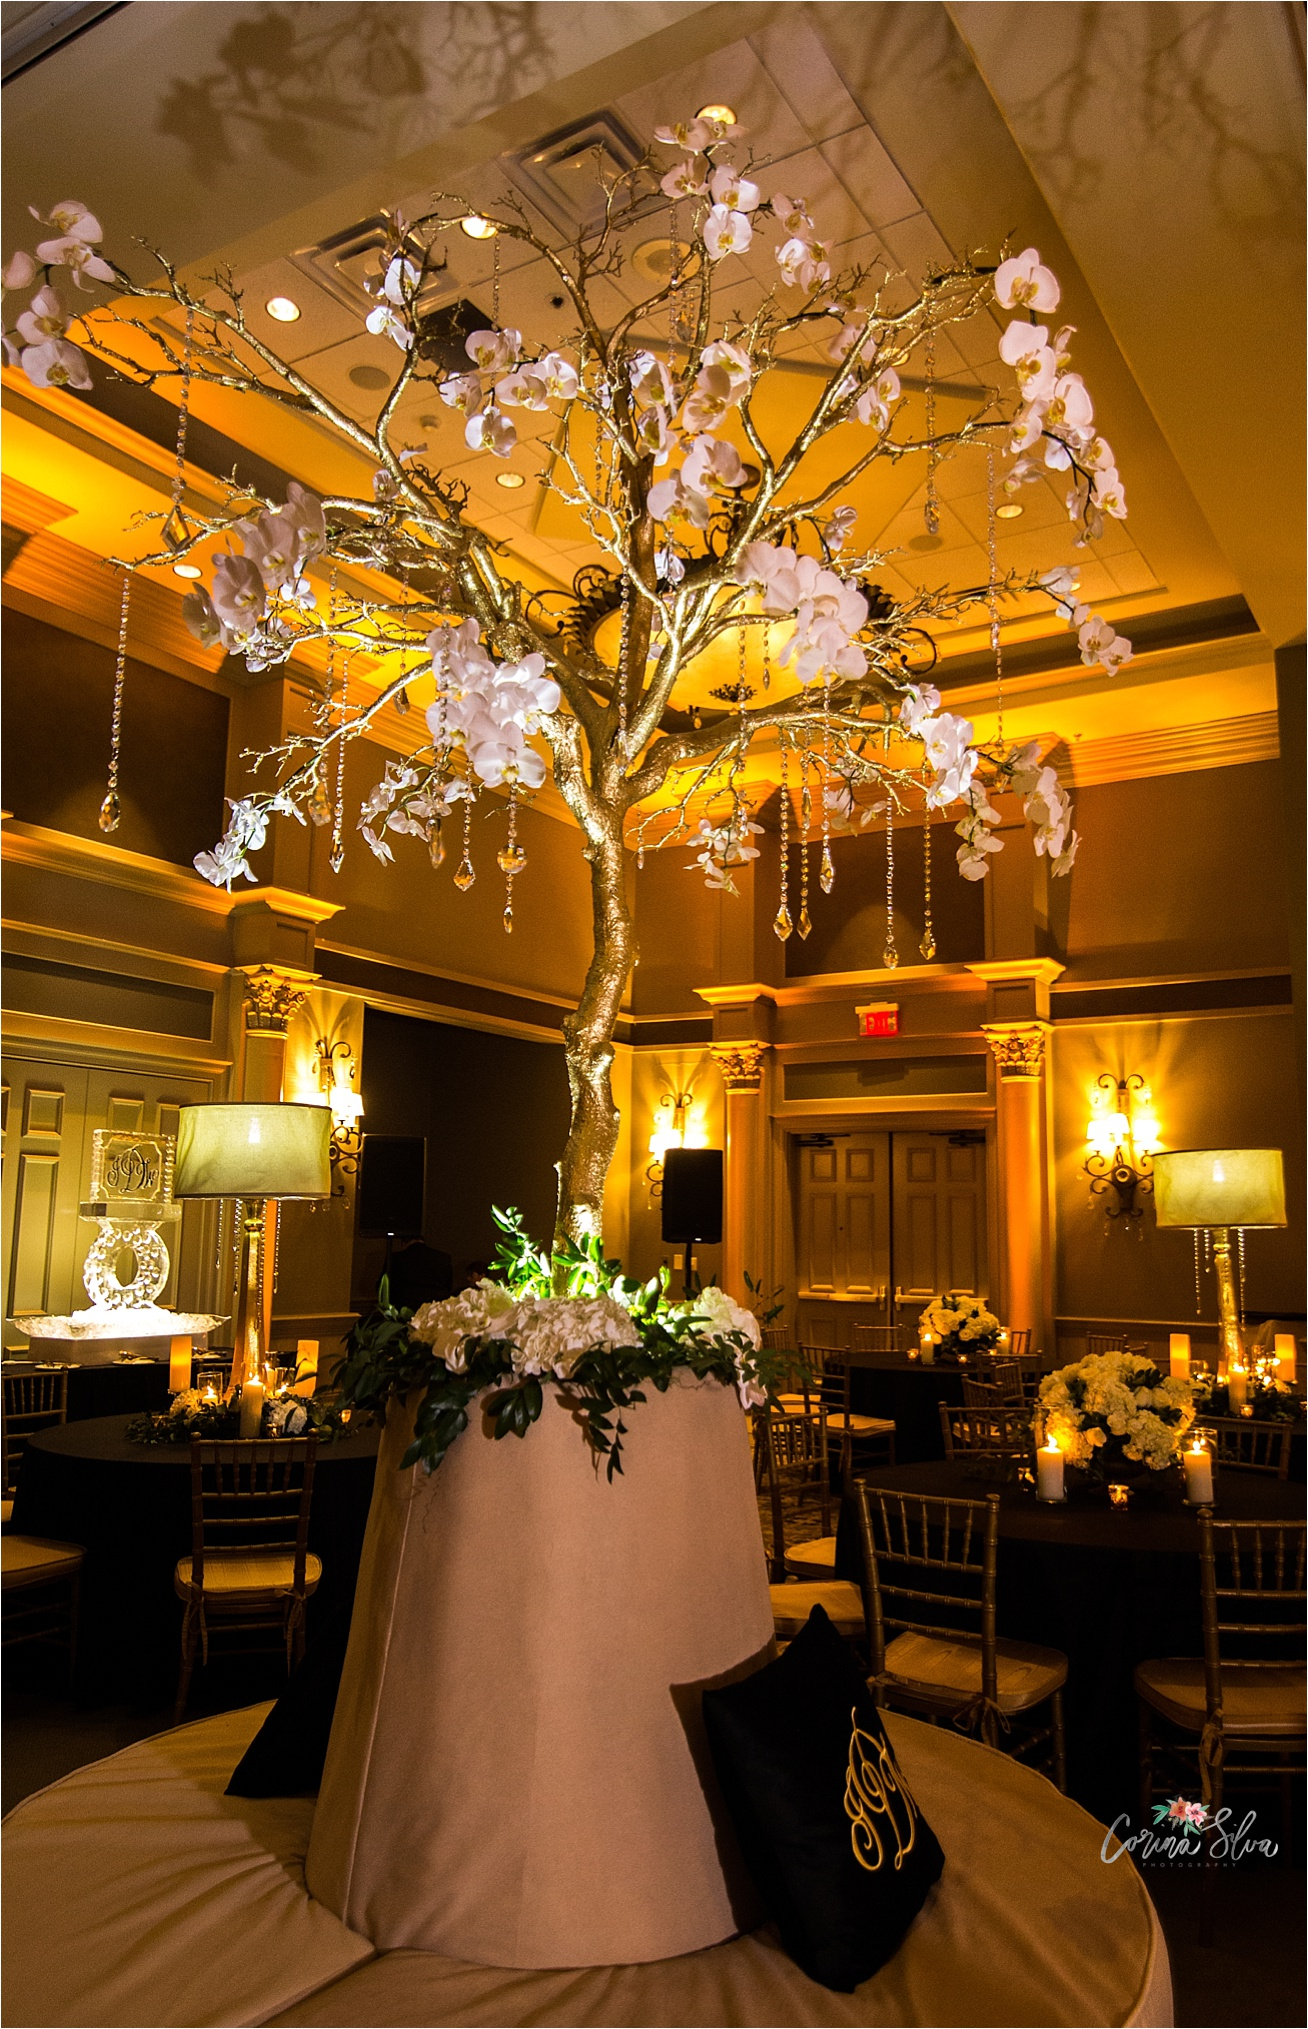 RSG-Event-and-Designs-luxury-wedding-decor-photos, Corina-Silva-Studios_0043.jpg